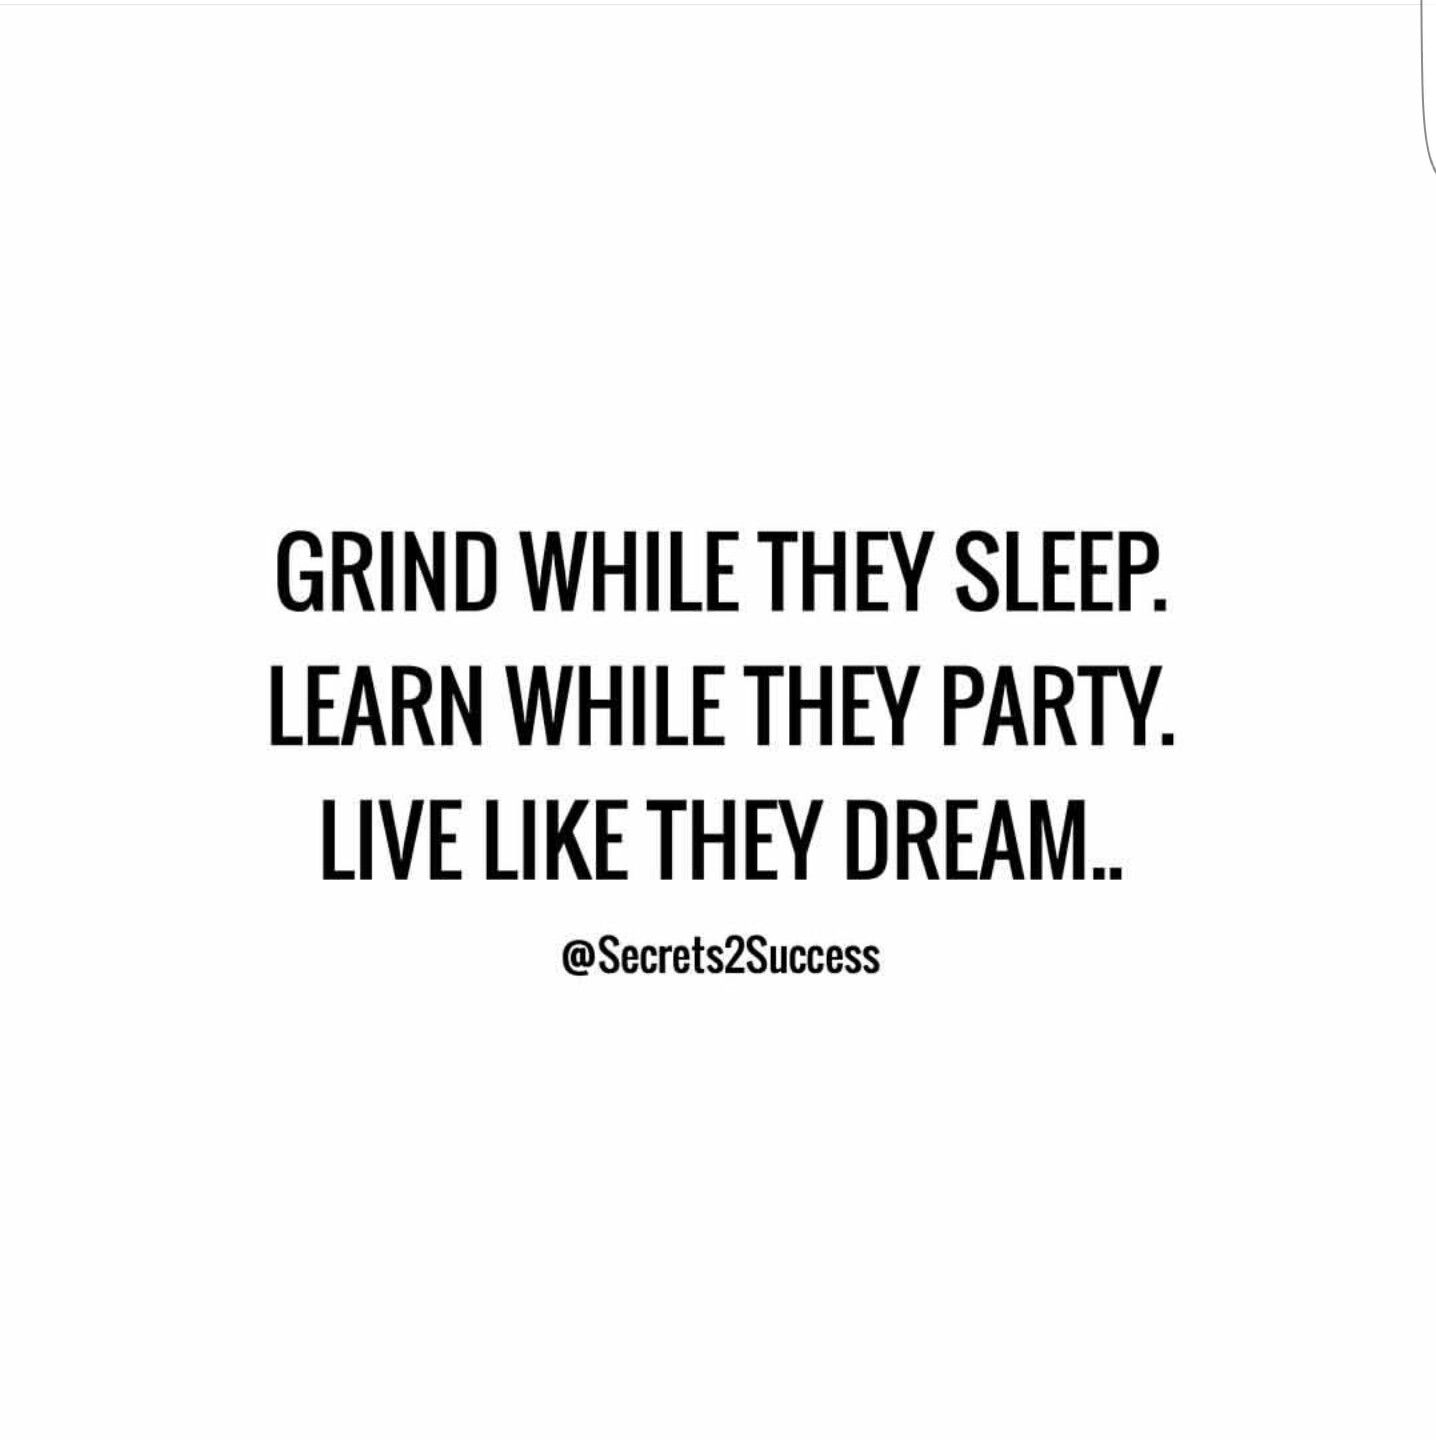 Grind While They Sleep Learn While They Party Live Like They Dream Motivation Inspiration Quote Grind Hustle H Sleep Quotes Grind Quotes Hustle Quotes